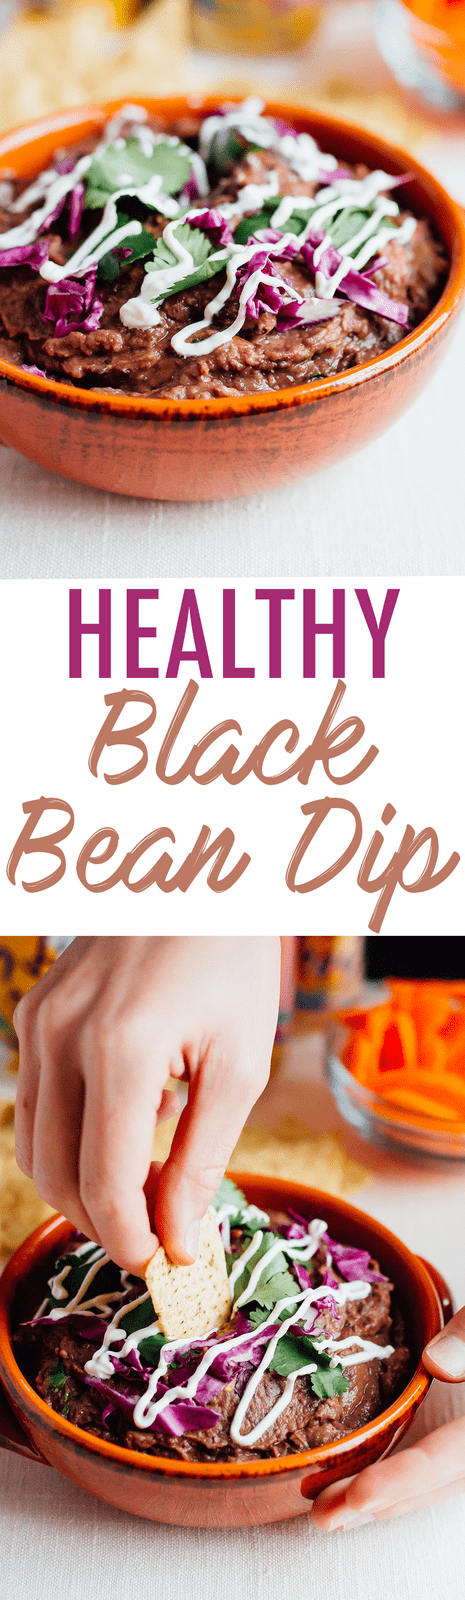 Healthy and easy black bean dip that takes only 15 minutes. Perfect for parties, game day or Mexican night. Just serve with veggies or tortilla chips!